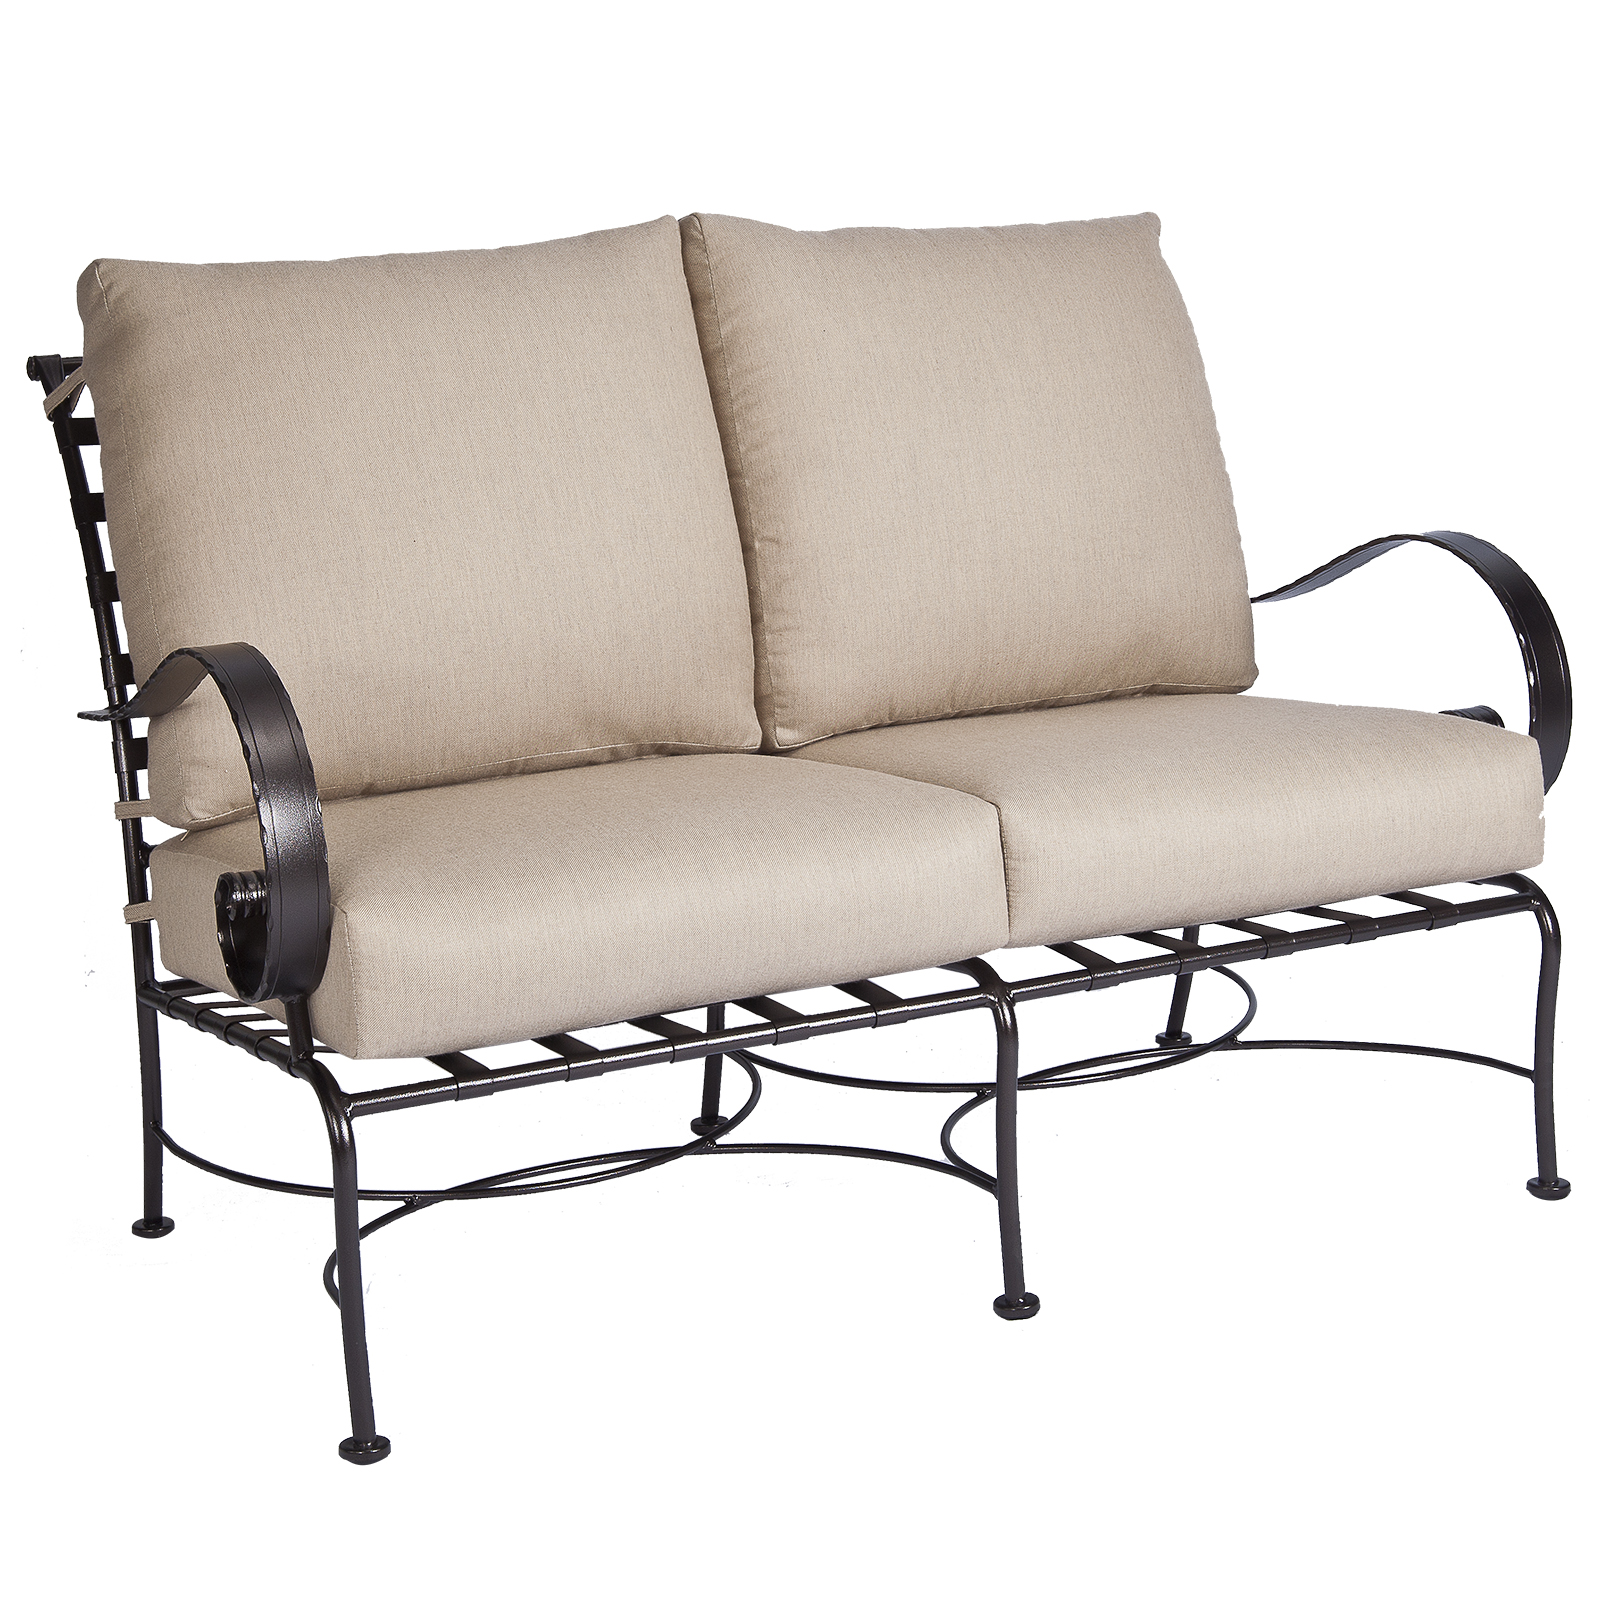 Love-Seat-956-2SW_Catalog_GR35_1600-Classico-W-OW-Lee